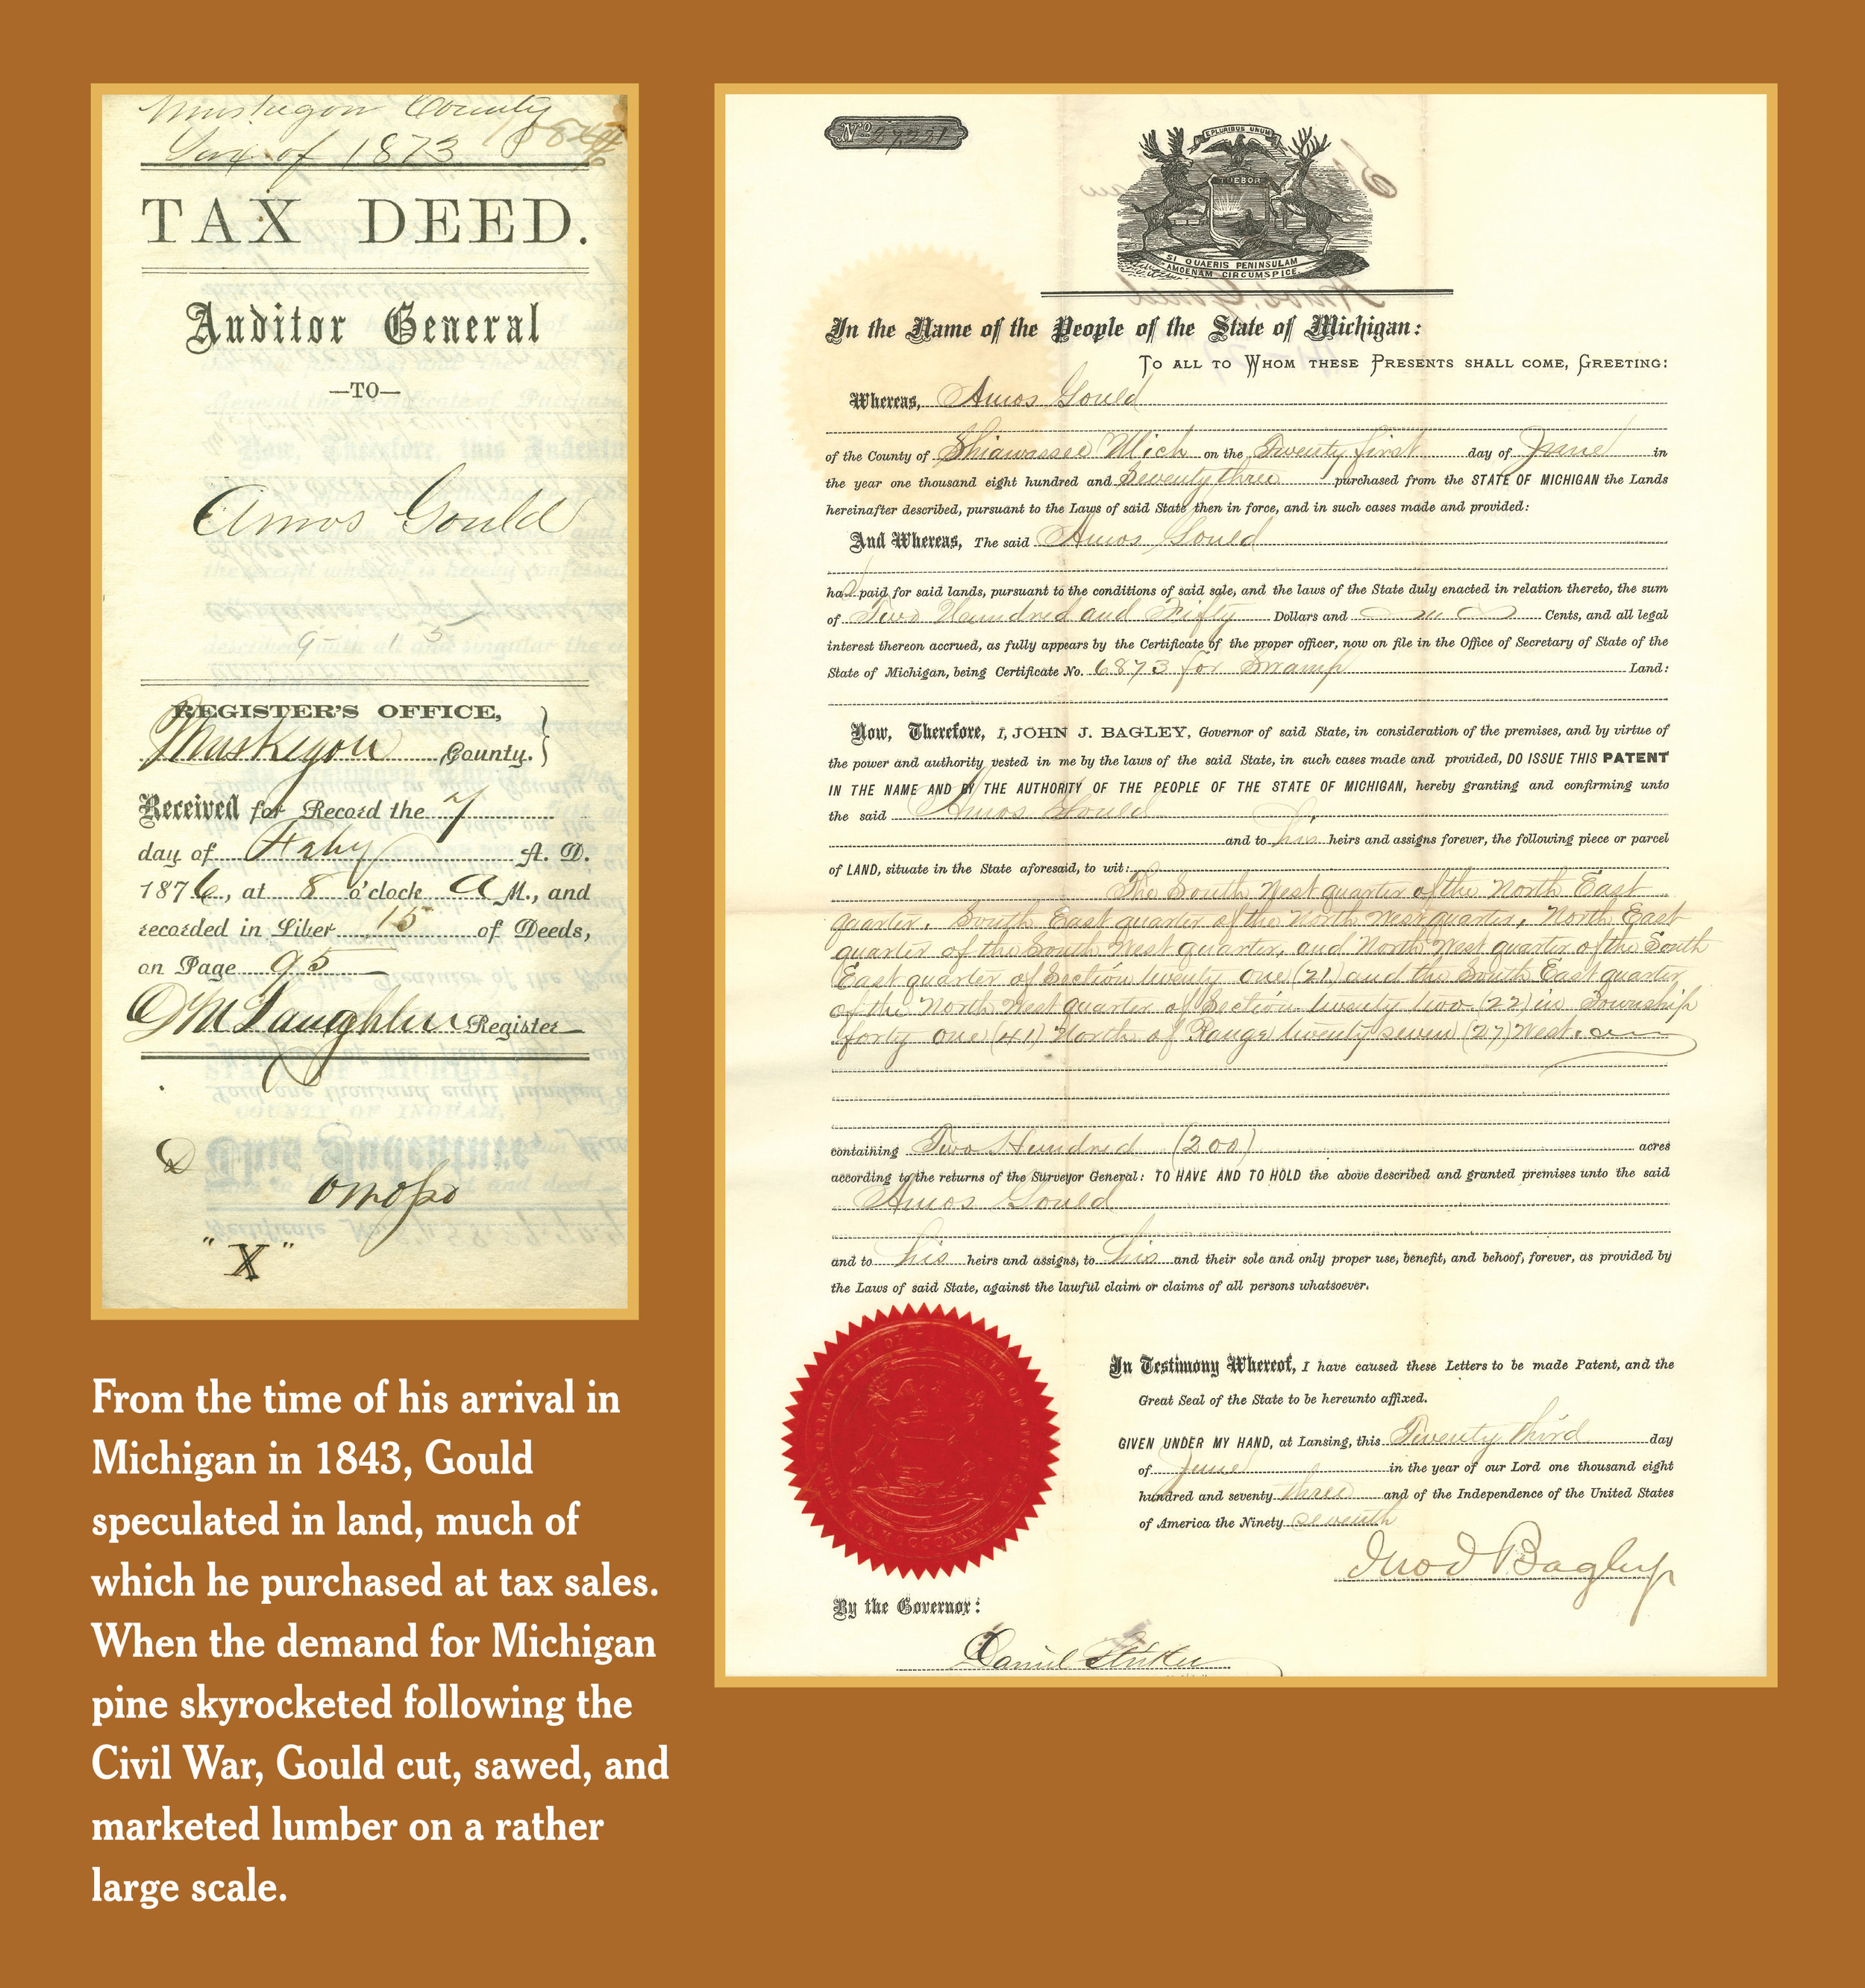 Gould-Tax-Deed-11x11.jpg